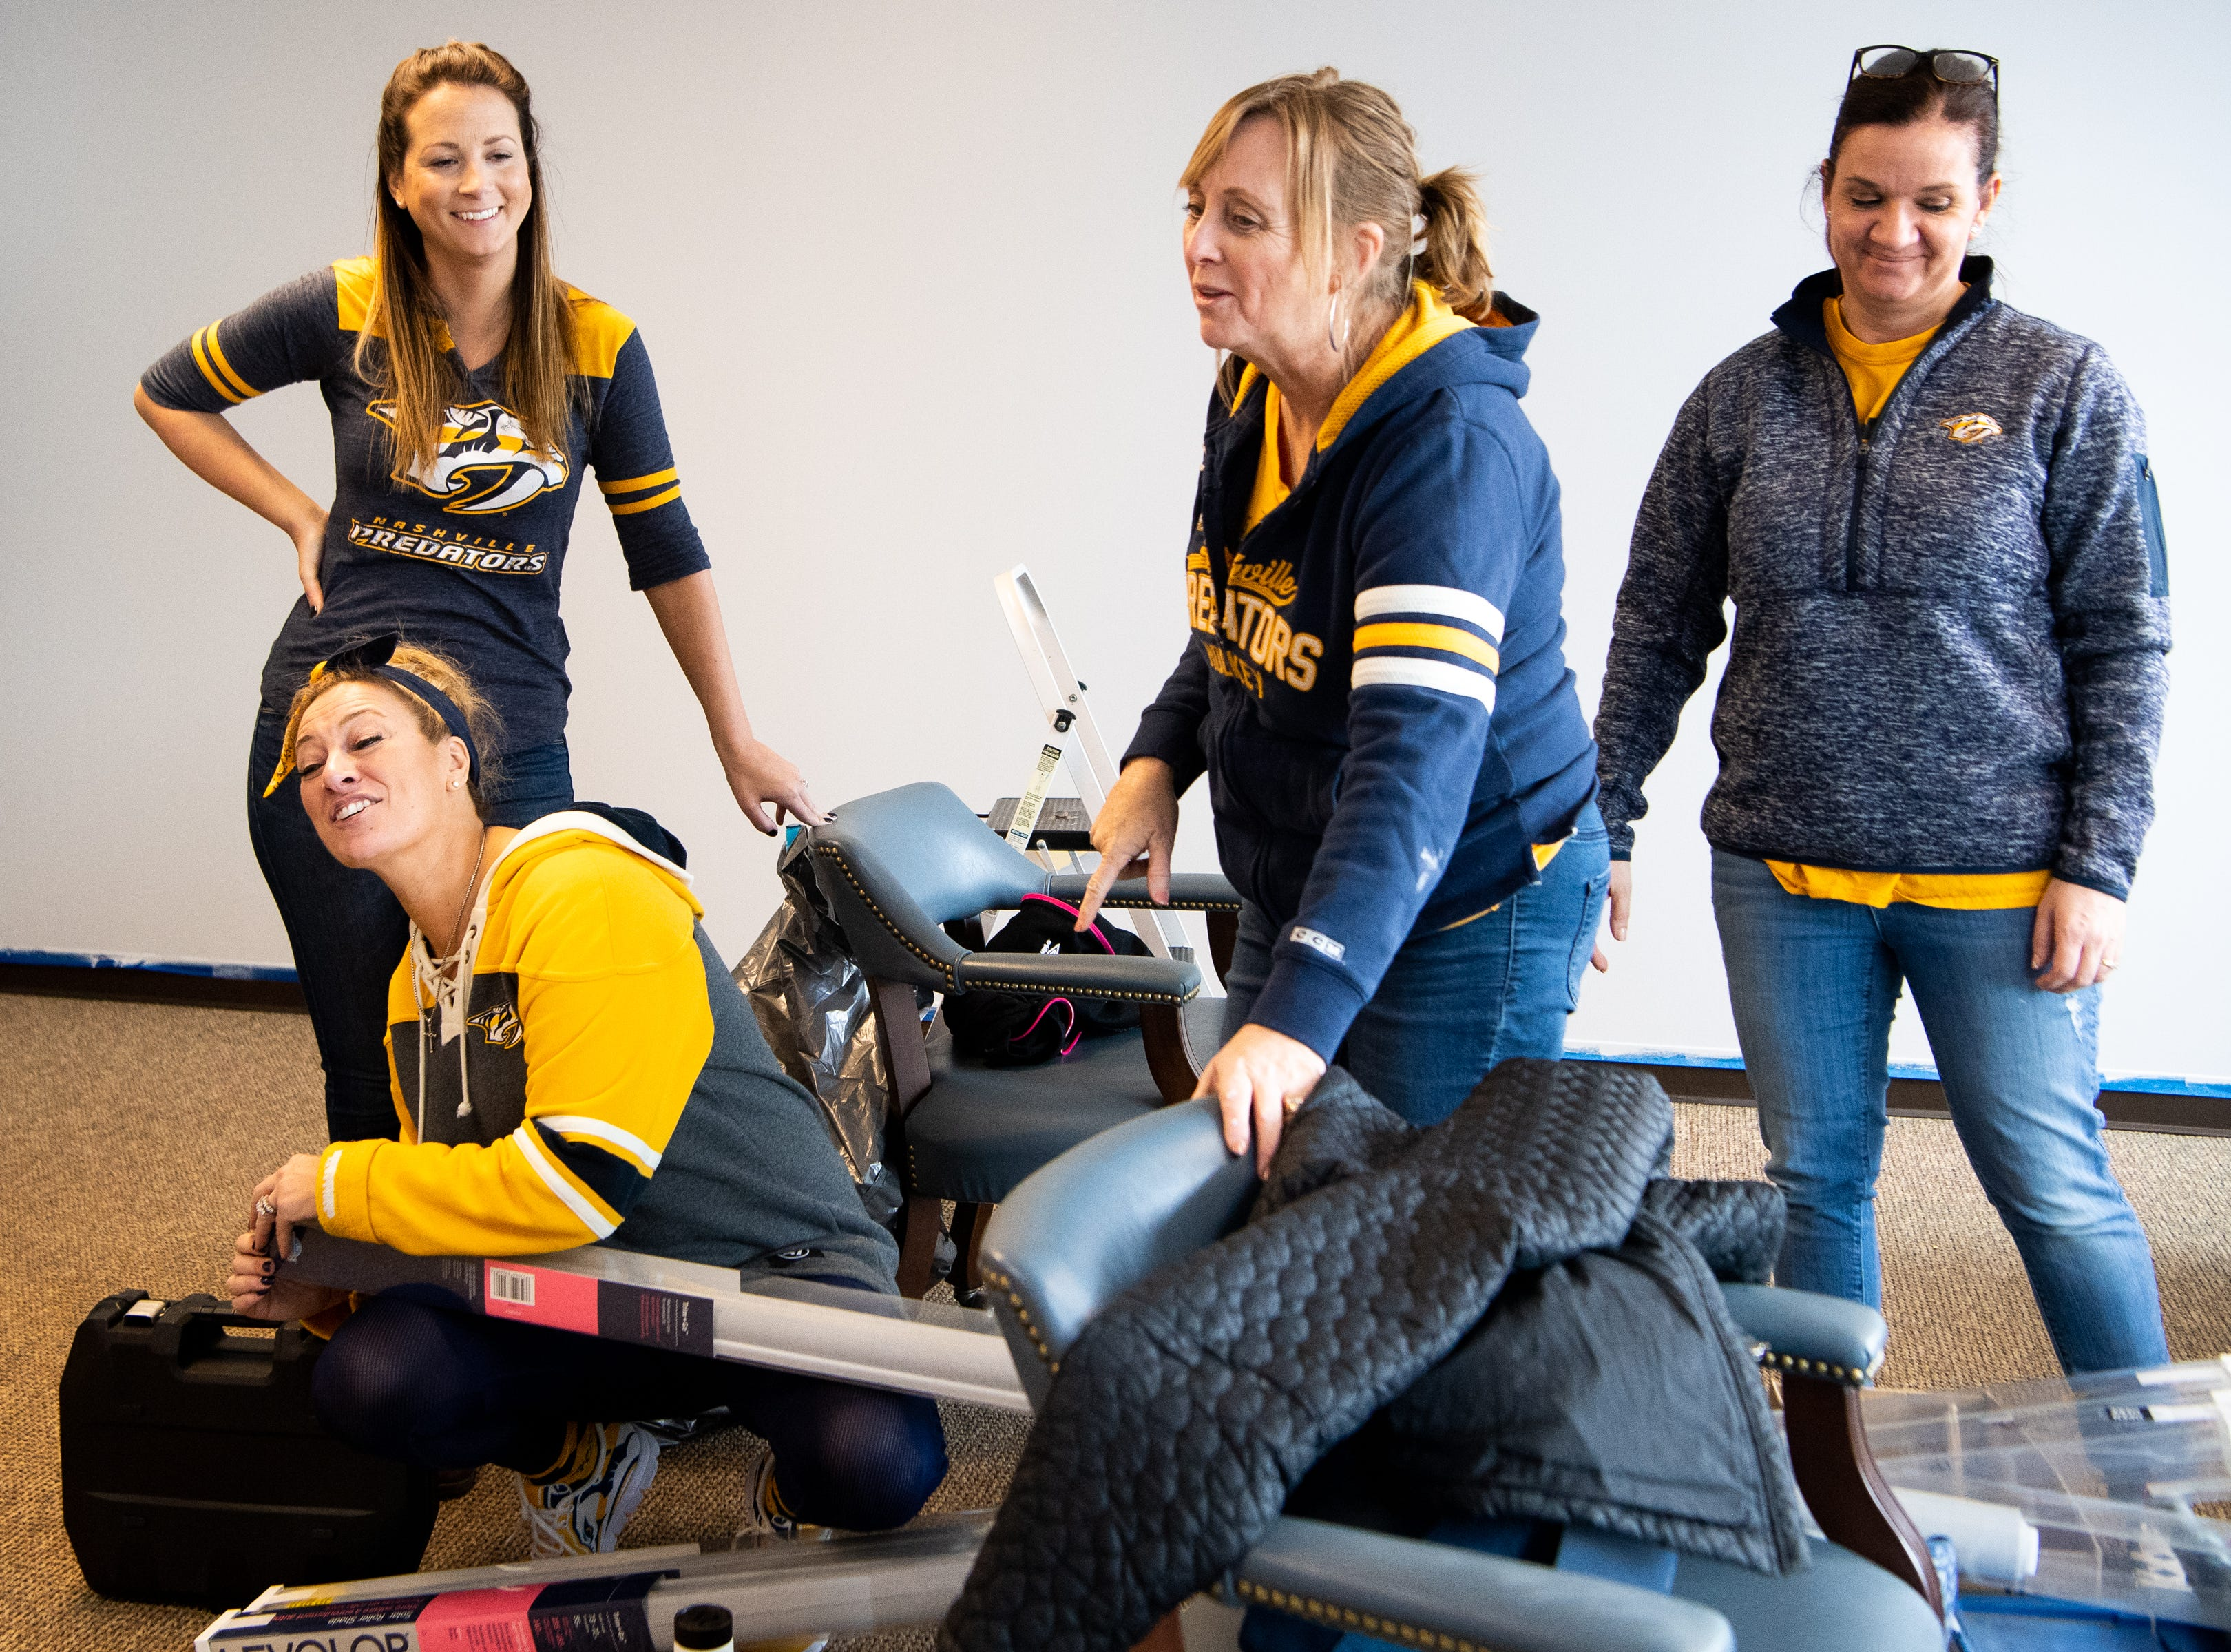 Kristen Laviolette (lower left), Marlene Vanderklok, Rhonda McCarthy, and Tracey Henry (from left) go through materials to makeover the entertainment room at Memorial Foundation Hope Lodge as a project for the wives, girlfriends and fiancees of the Nashville Predators Tuesday, March 12, 2019, in Nashville, Tenn.